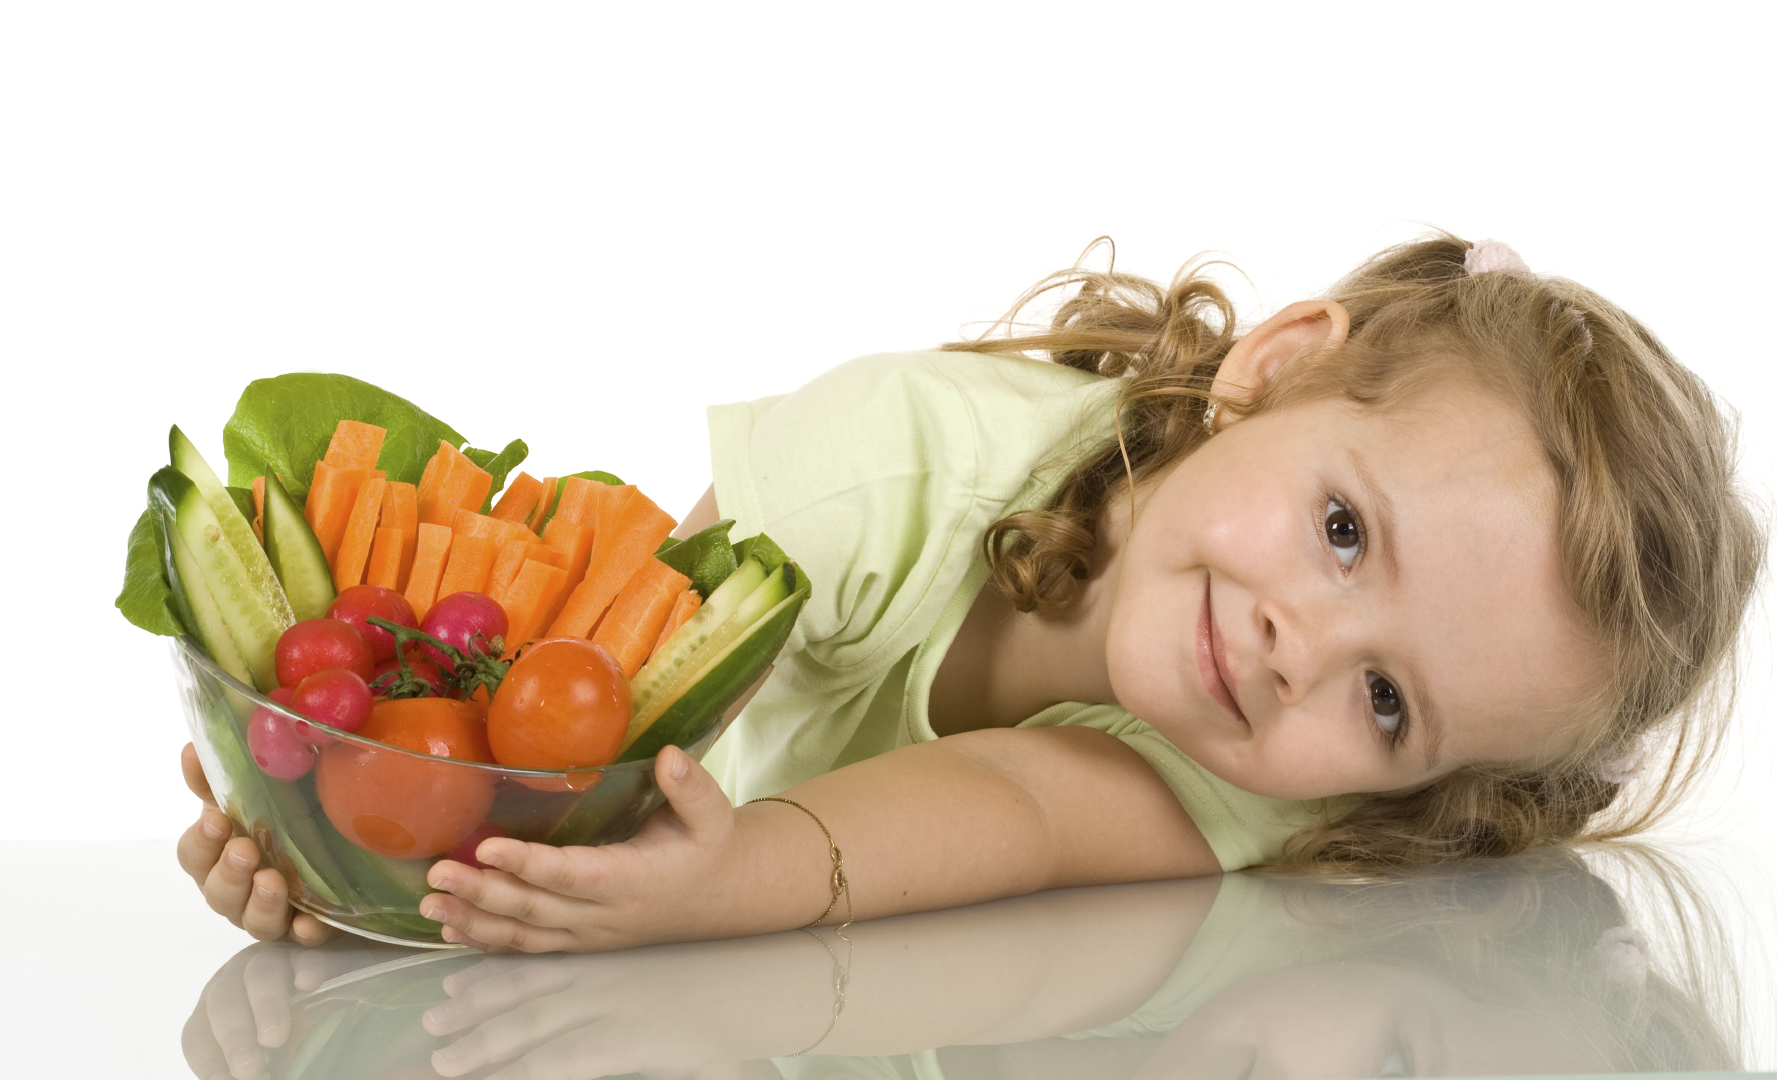 Eating Frequency And Overweight And Obesity In Children And Adolescents: A Meta-Analysis